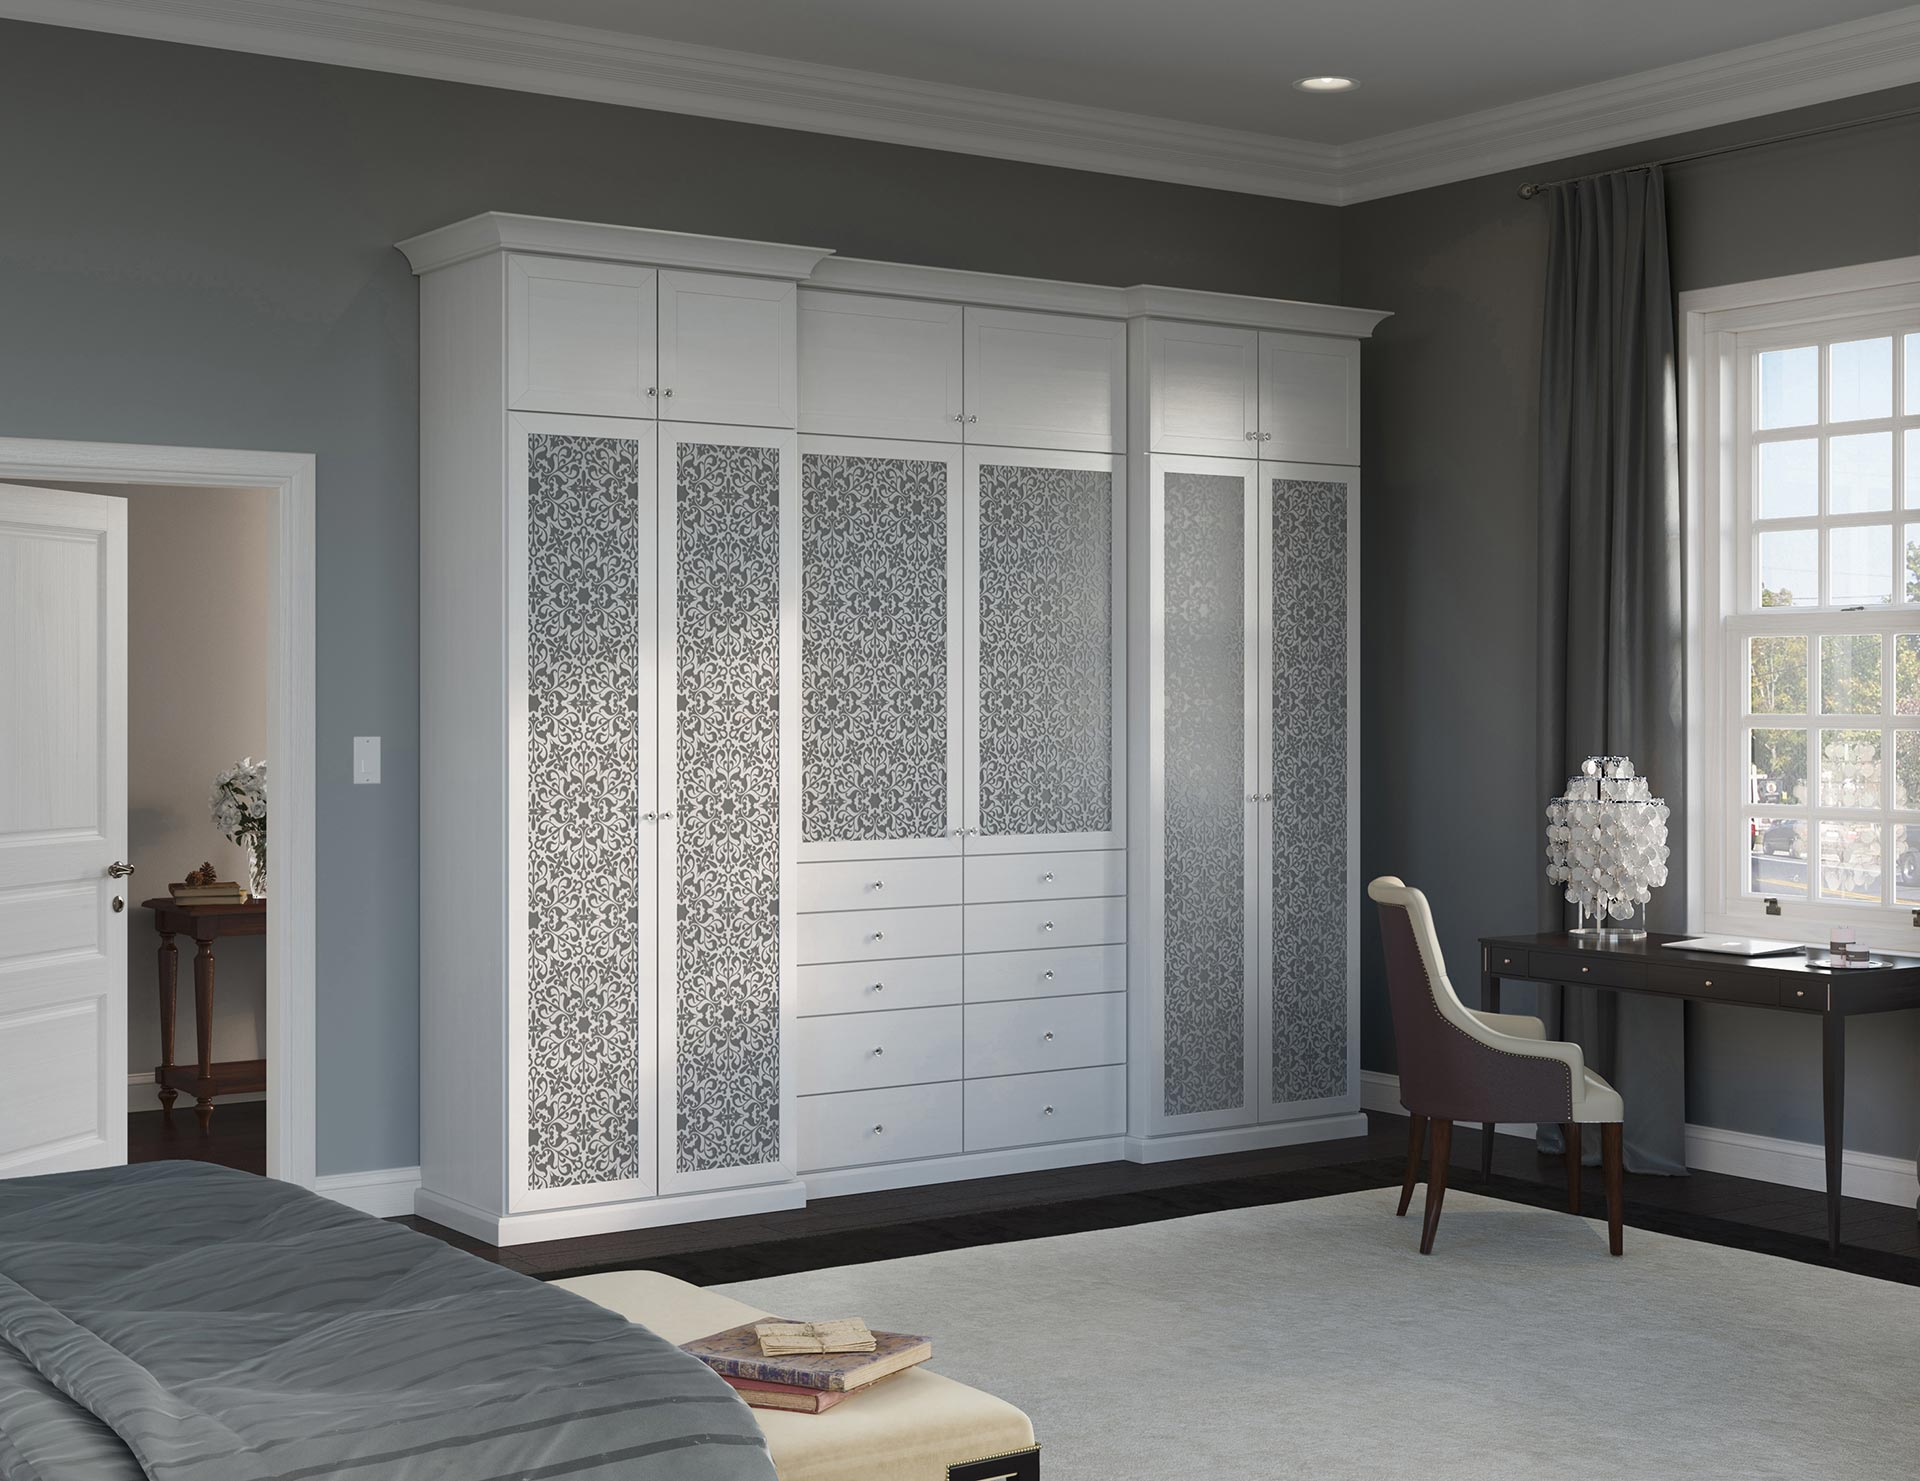 Stand Alone Wardrobe Designs : Custom wardrobe design wardrobe storage systems california closets